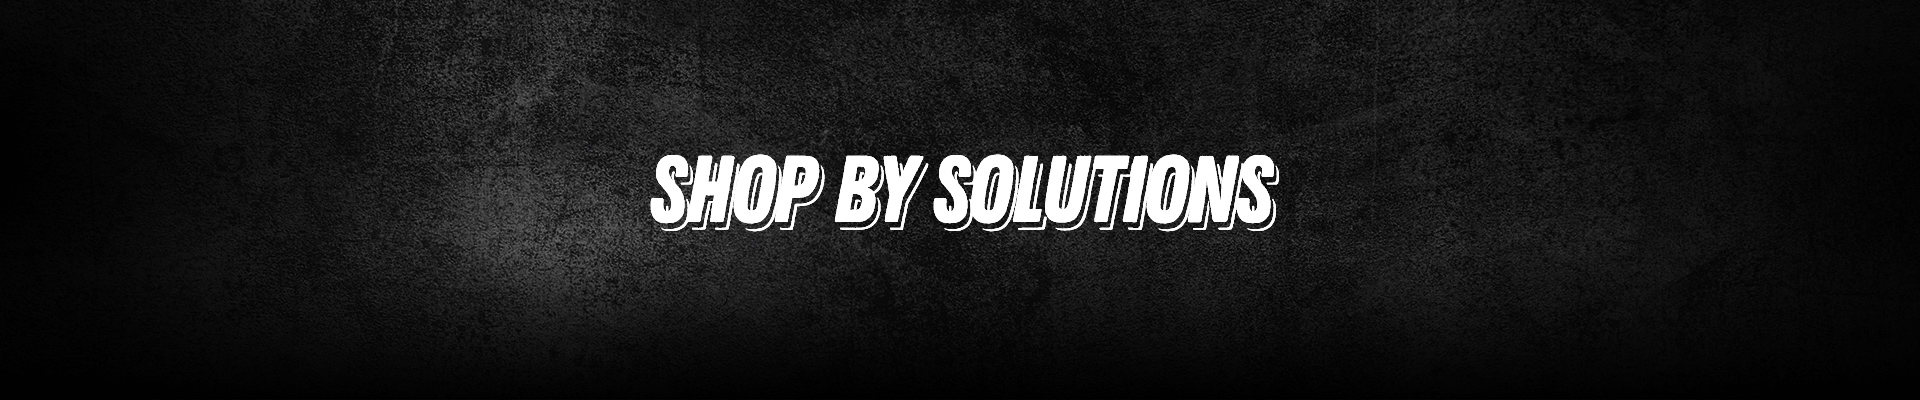 shop-by-solutions.jpg